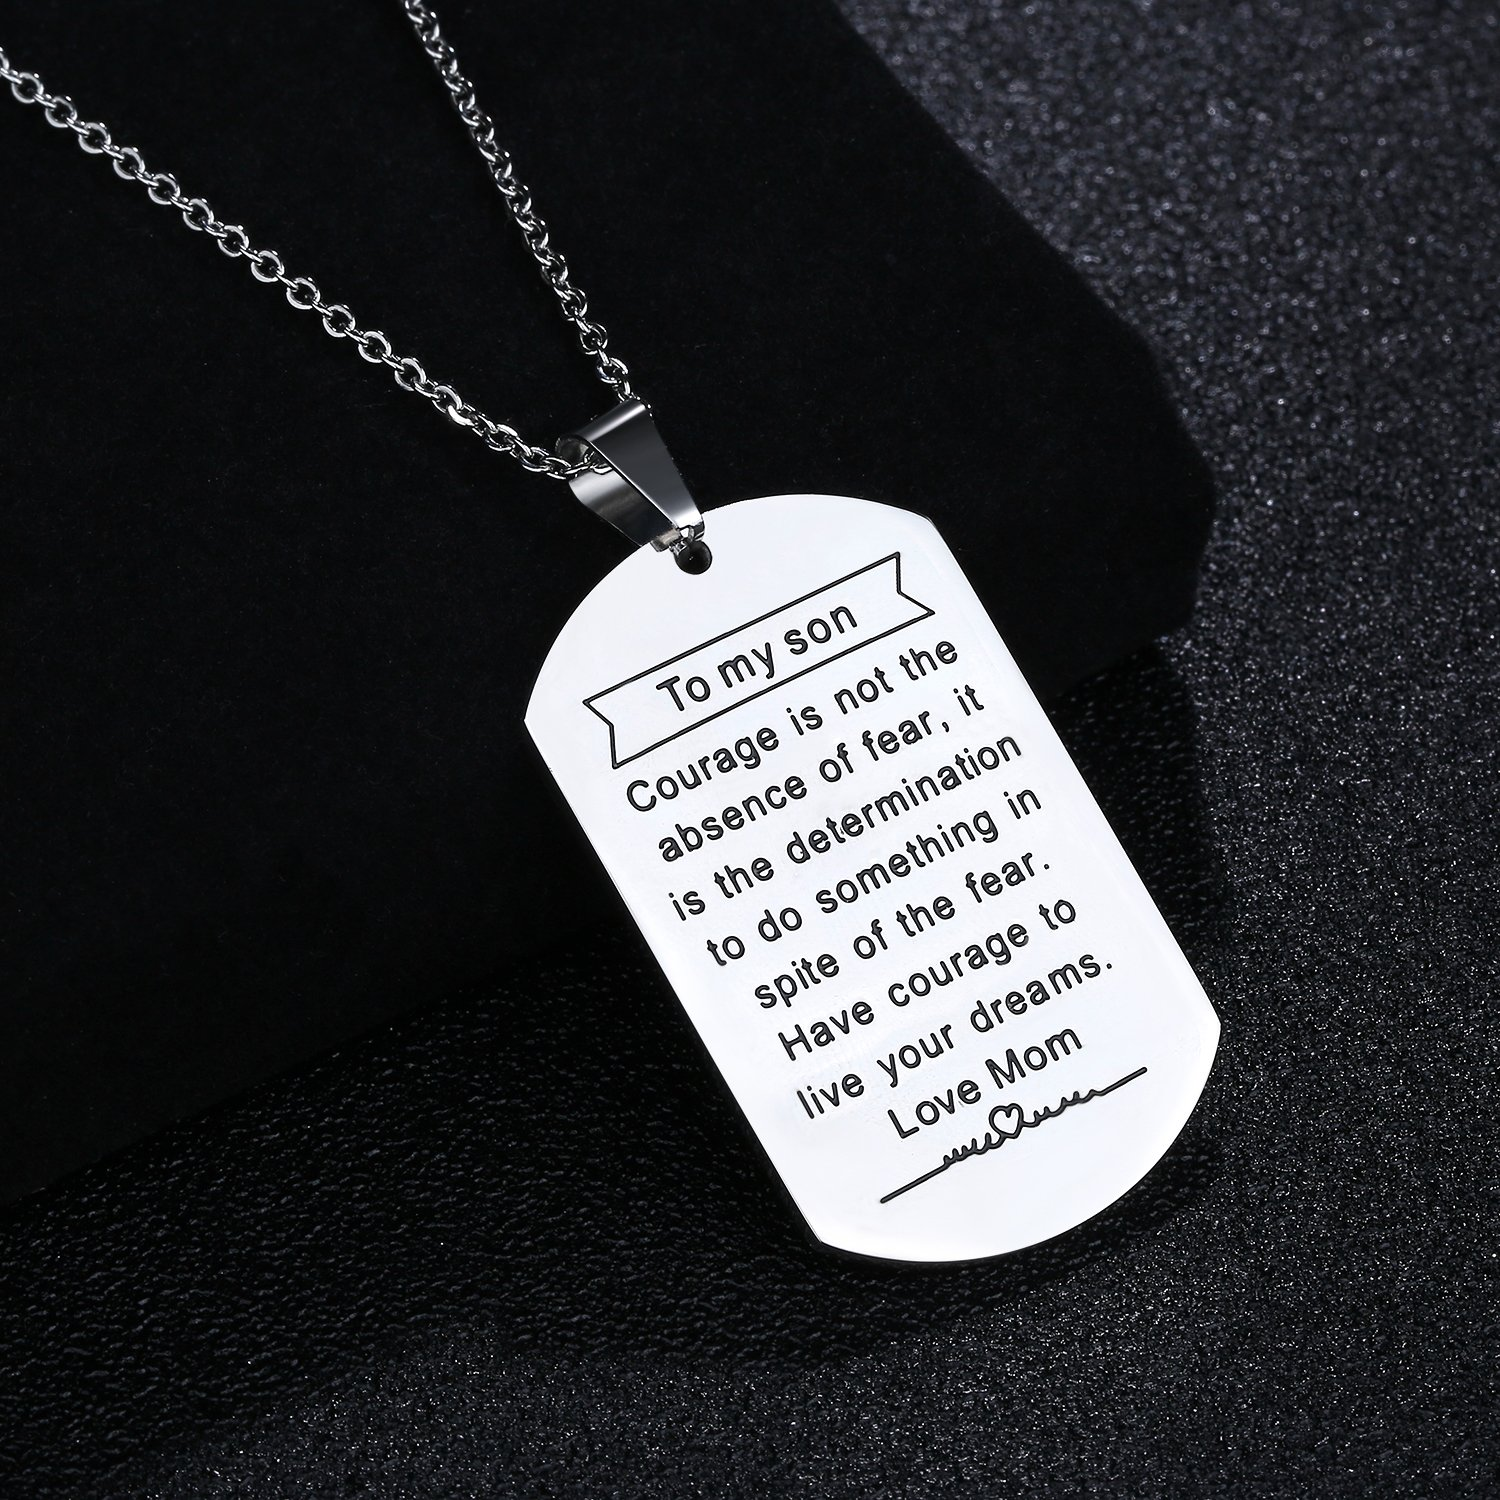 Jureeone Inspirational Stainless Steel Pendant Necklace Letter Tag Gifts for Family Friends Unisex Always Remember You are Braver Stronger Smarter Than You Think